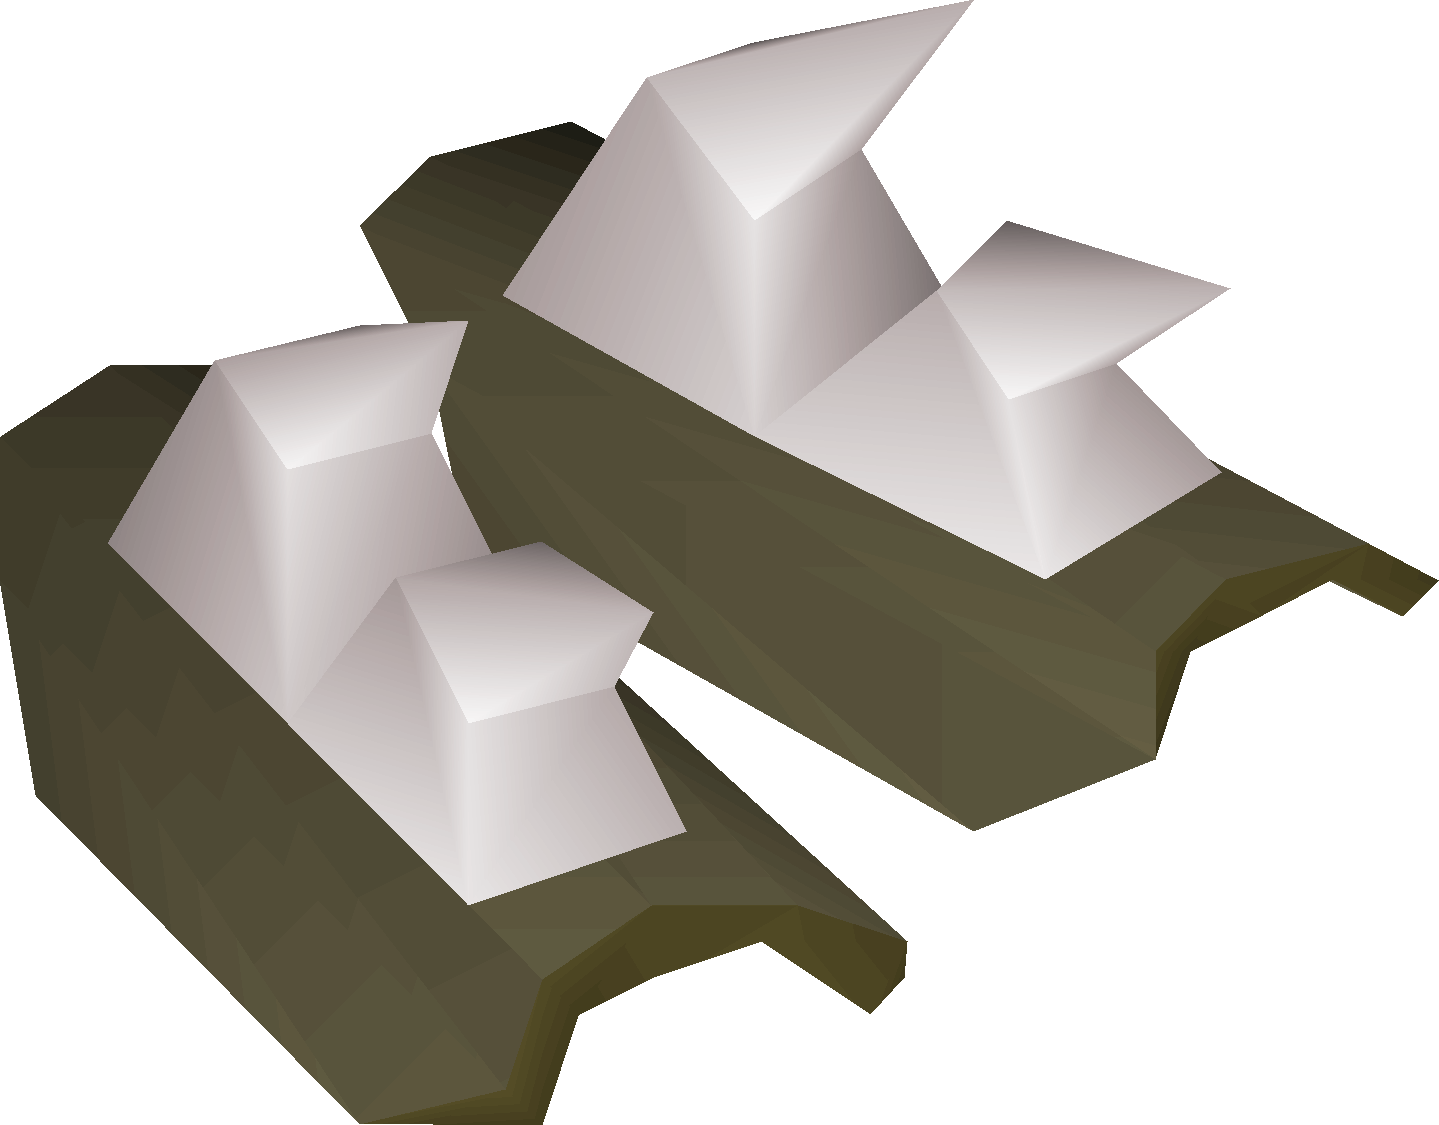 Osrs how to make vambraces